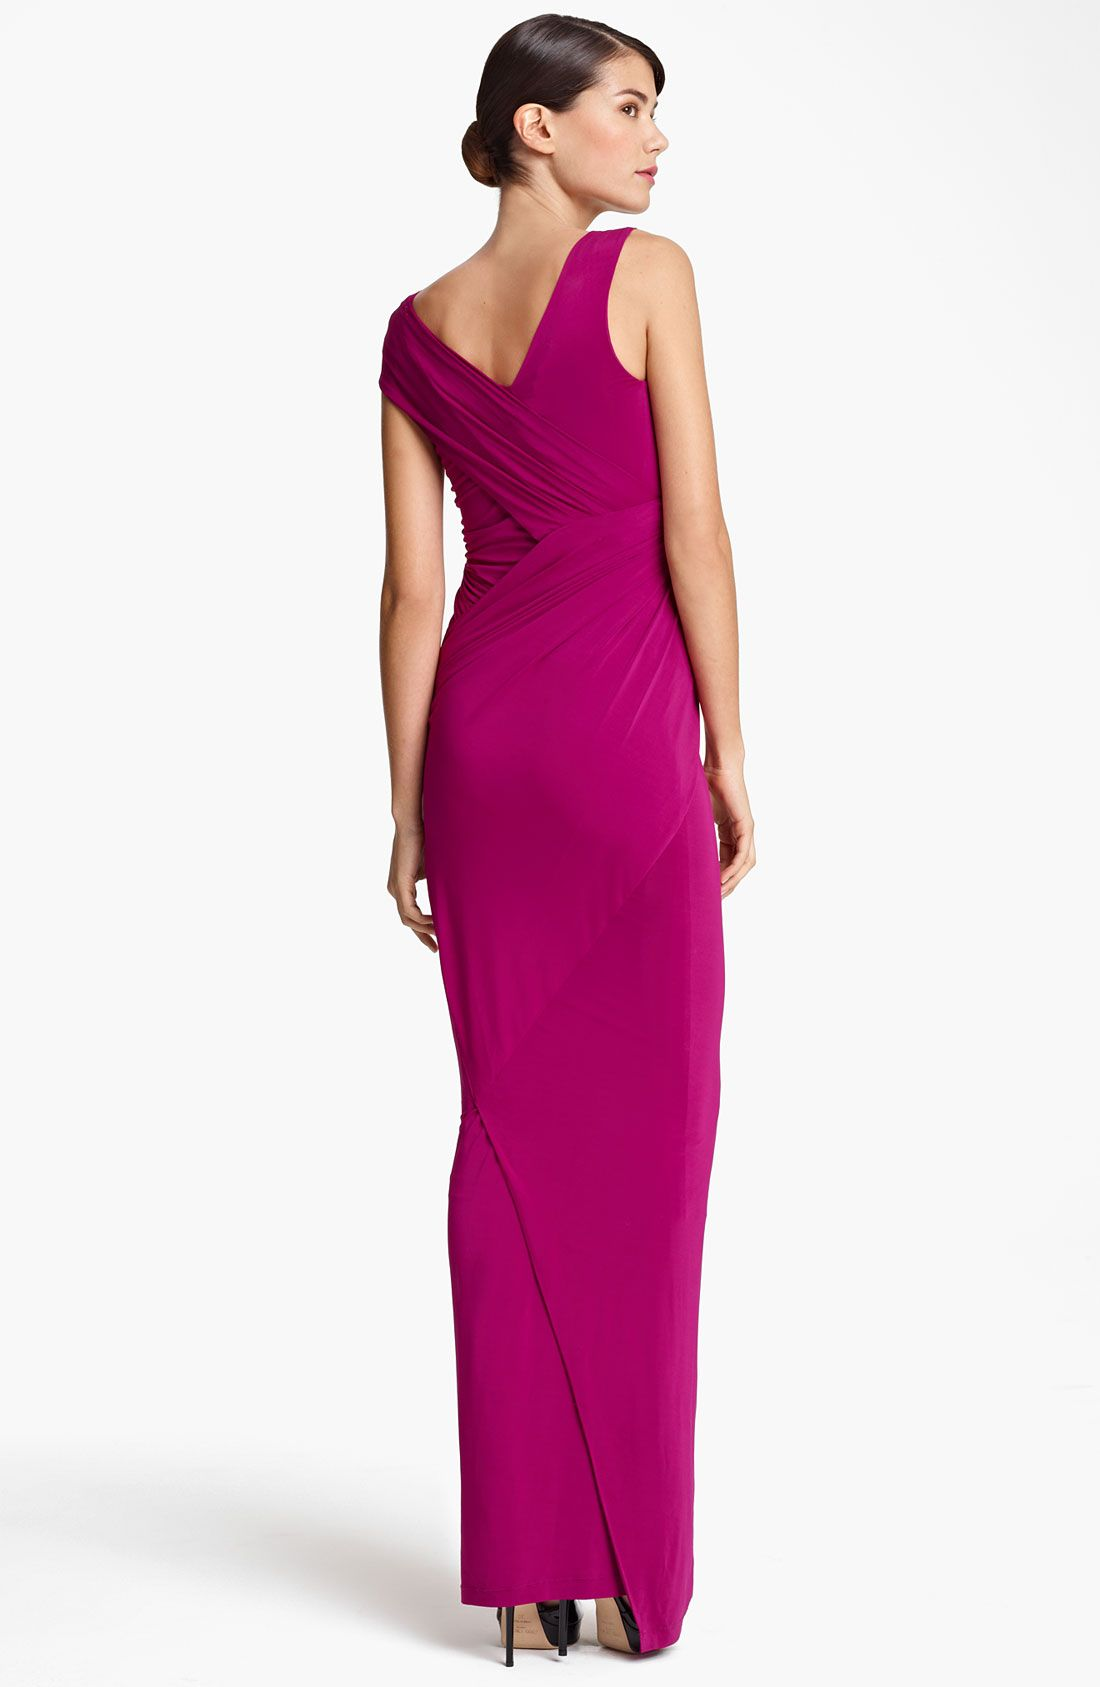 Donna Karan New York Collection Cap Sleeve Jersey Gown in Purple (lipstick red) | Lyst